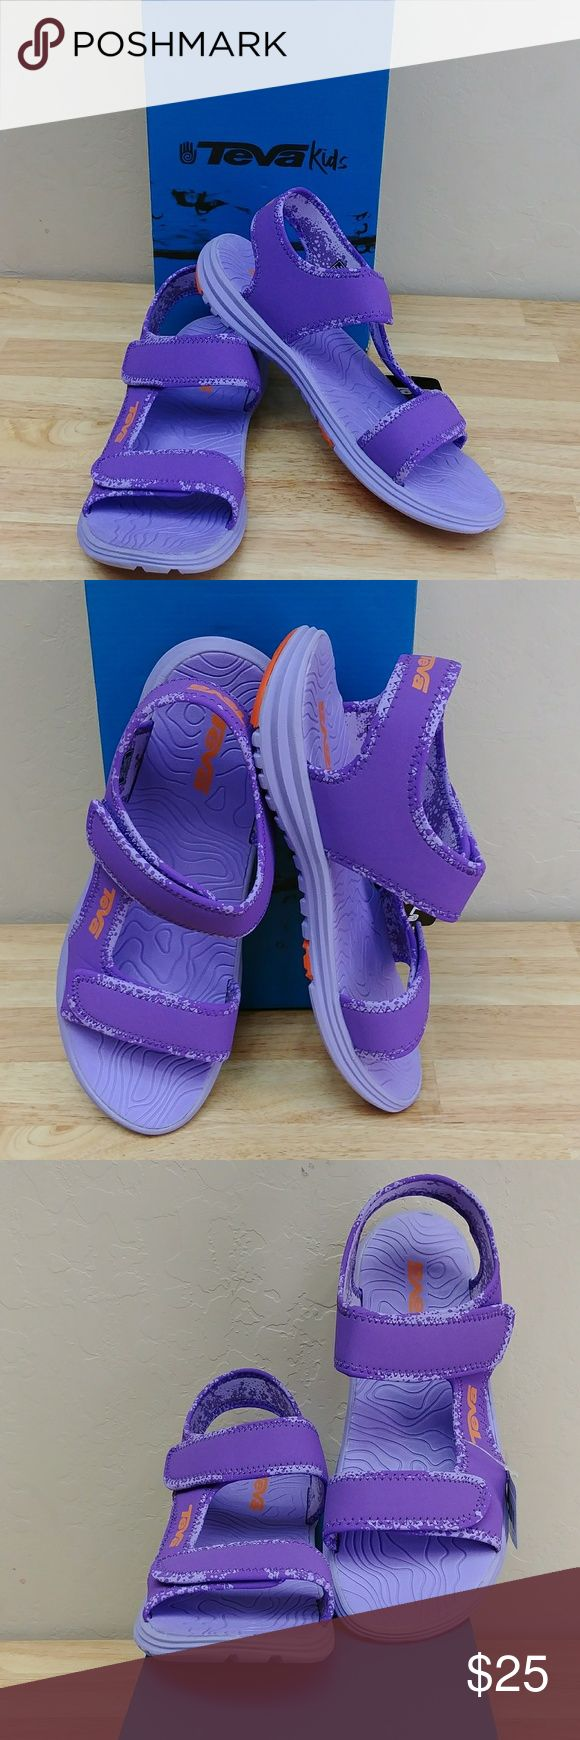 Teva Kid's-Youth Tidepool Sandal Teva Kids-Youth Tidepool Sandal, size 7-M Us (Kids-Youth), color purple Orange, synthetic upper, hook & loop closure, EVA,  rubber outsole, compare $32.00 store retail price value, comes new in original box in good cosmetic condition, Tidepool sandal is not, in fact, exclusively for hopping though tidepools?this ultralight amphibious sandal walks the walk from wet to dry, from trail to town. Teva Shoes Sandals & Flip Flops